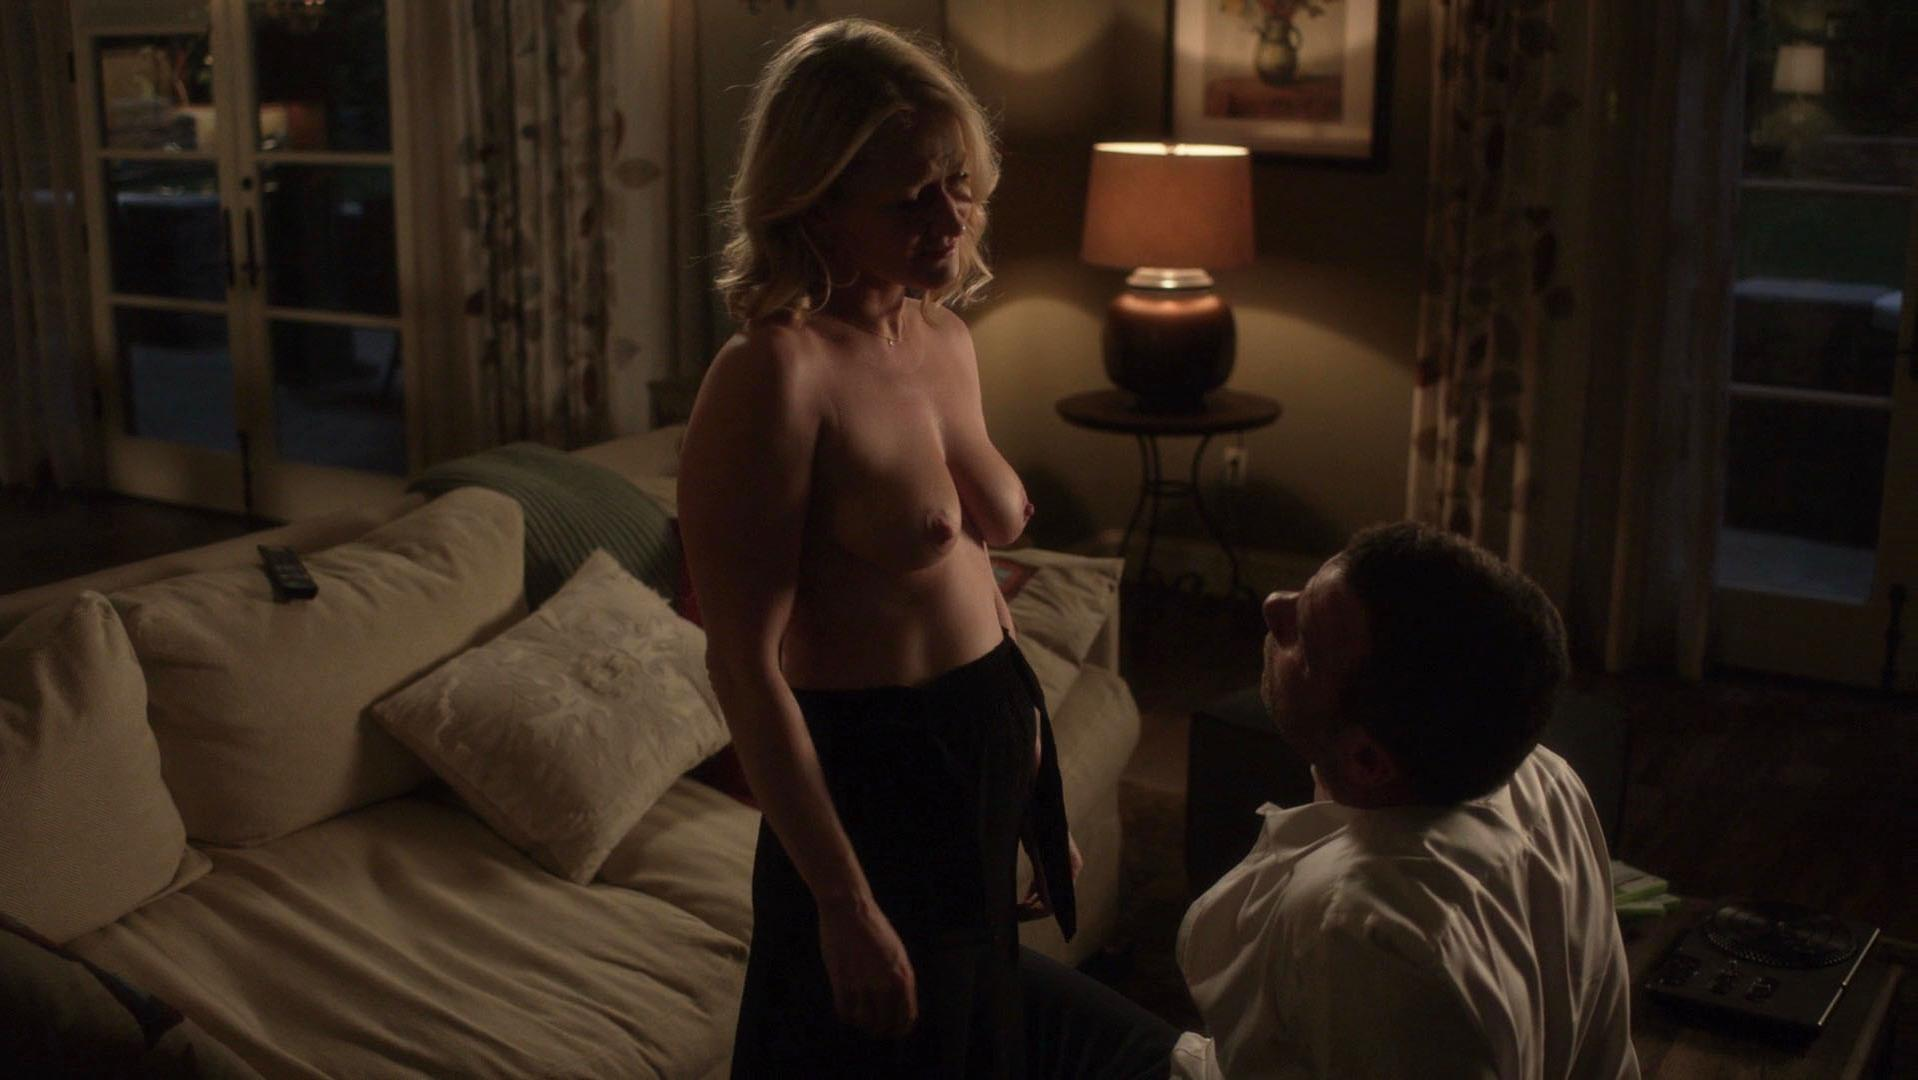 Paula malcomson nude pictures can not